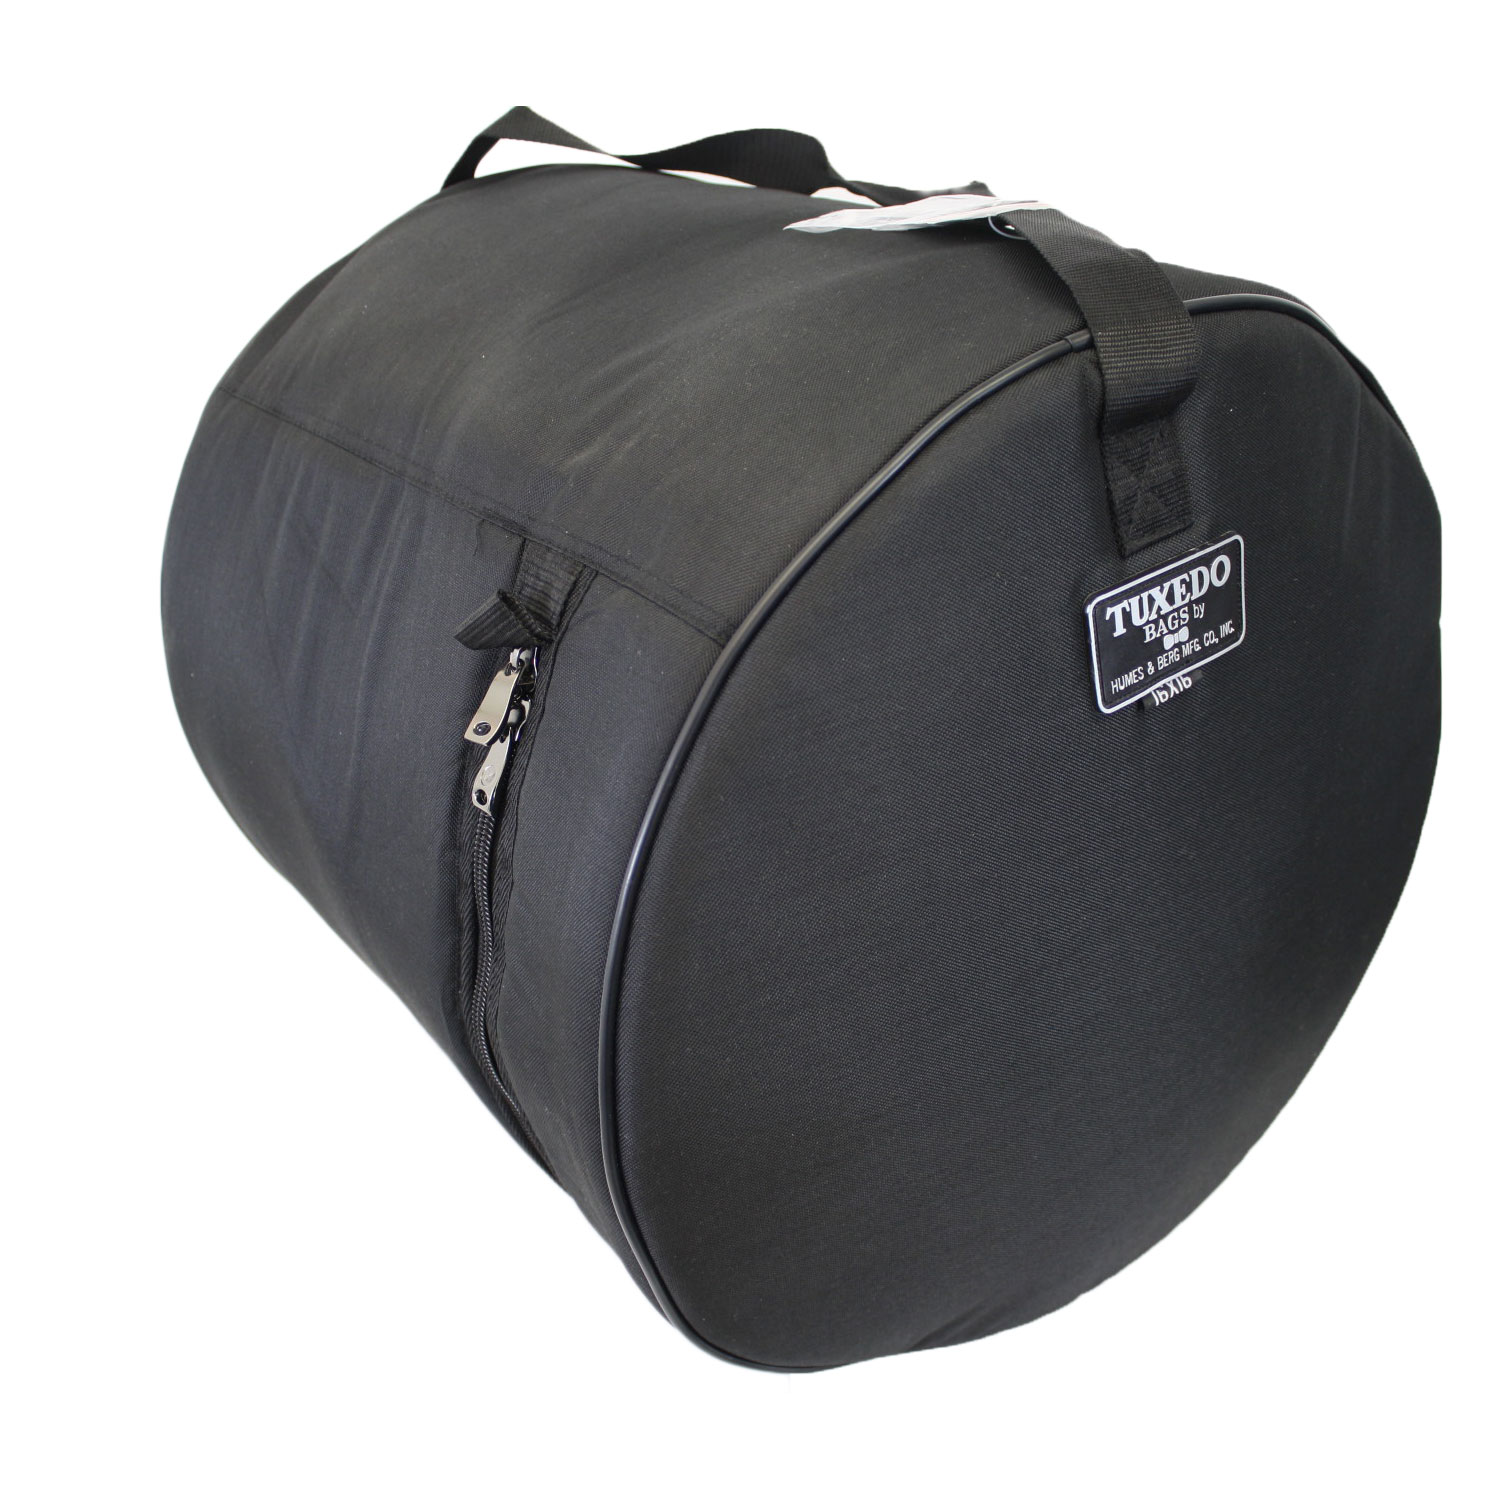 "Humes & Berg 16"" (Deep) x 18"" (Diameter) Tuxedo Tom Bag/Soft Case"